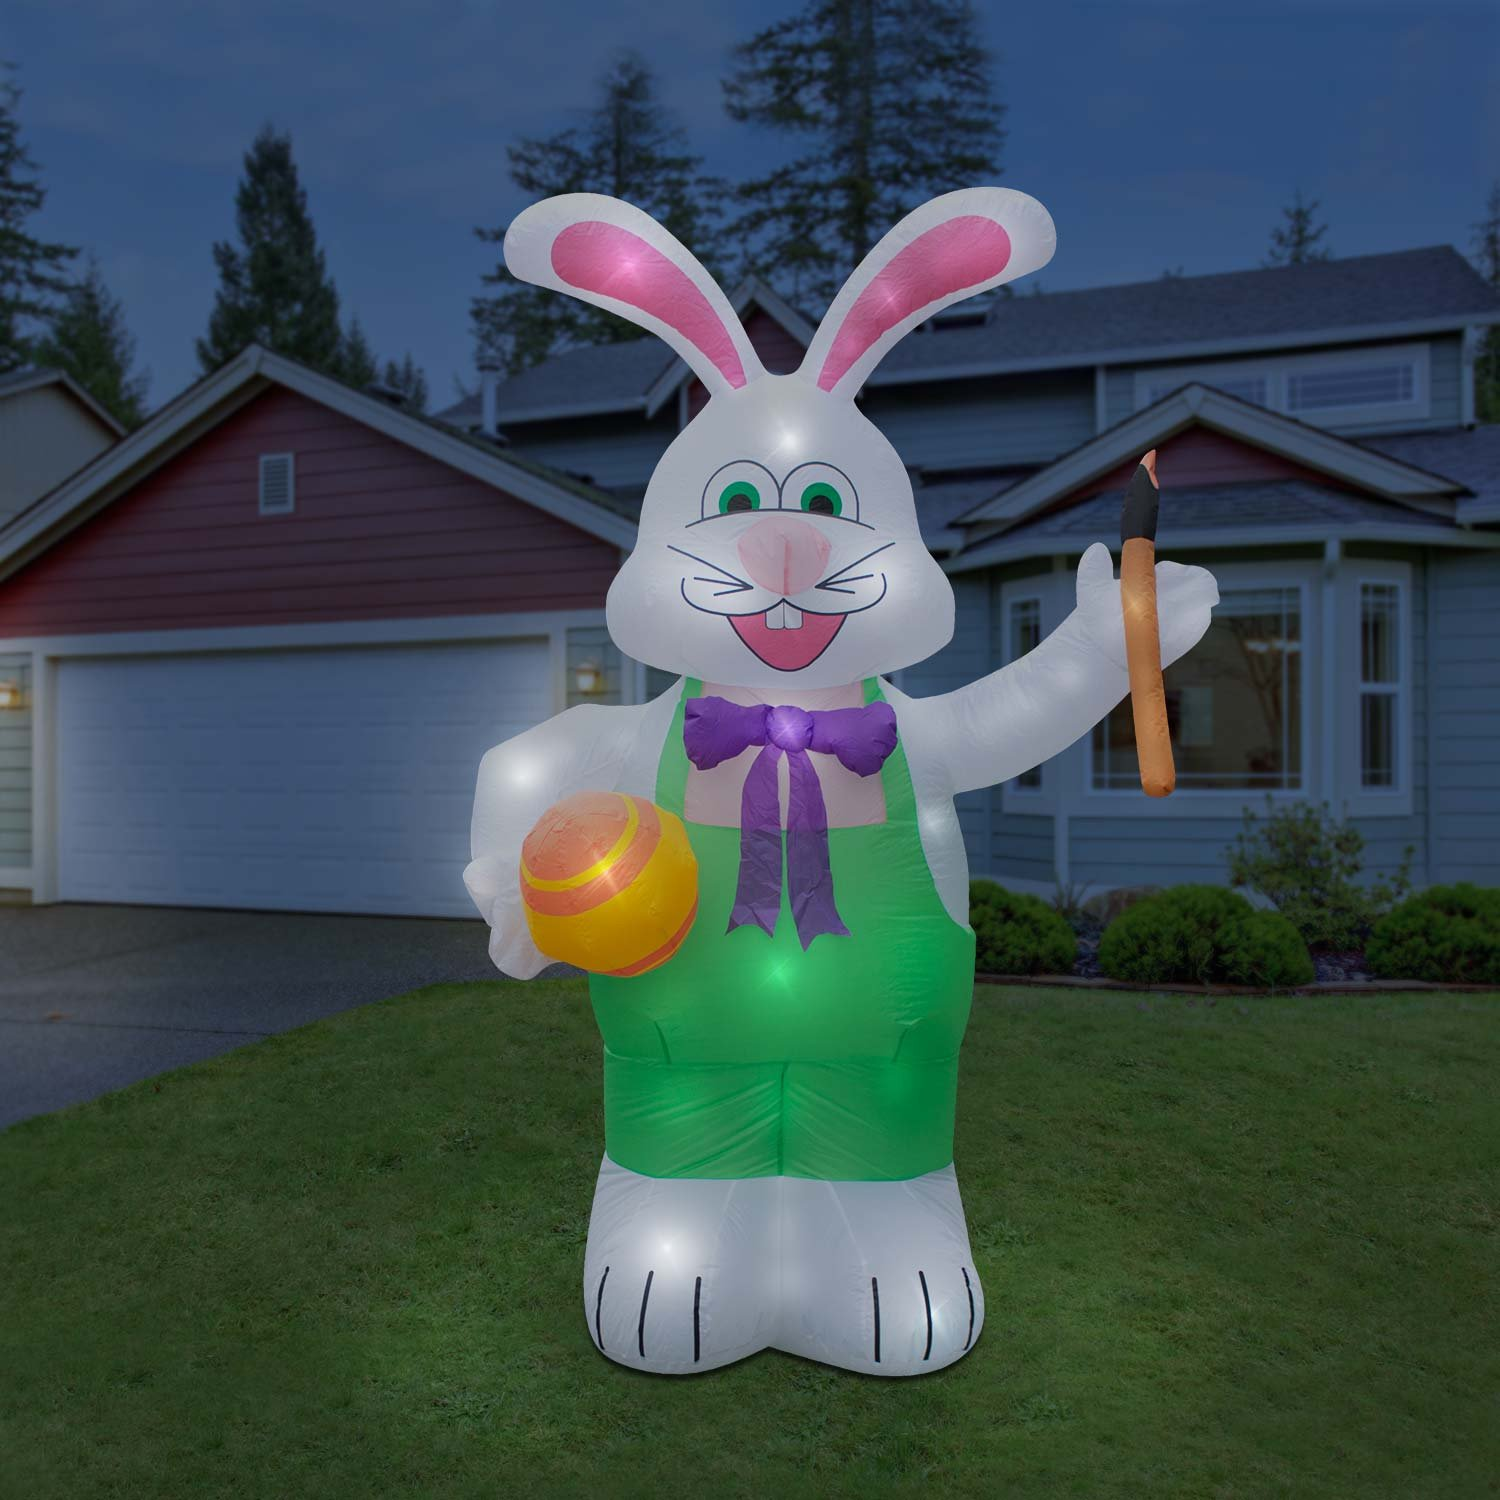 Holidayana Inflatable Giant 8 Ft. Bunny With Paintbrush Inflatable Featuring Lighted Interior / Airblown Inflatable Easter Decoration With Built In Fan And Anchor Ropes by Holidayana